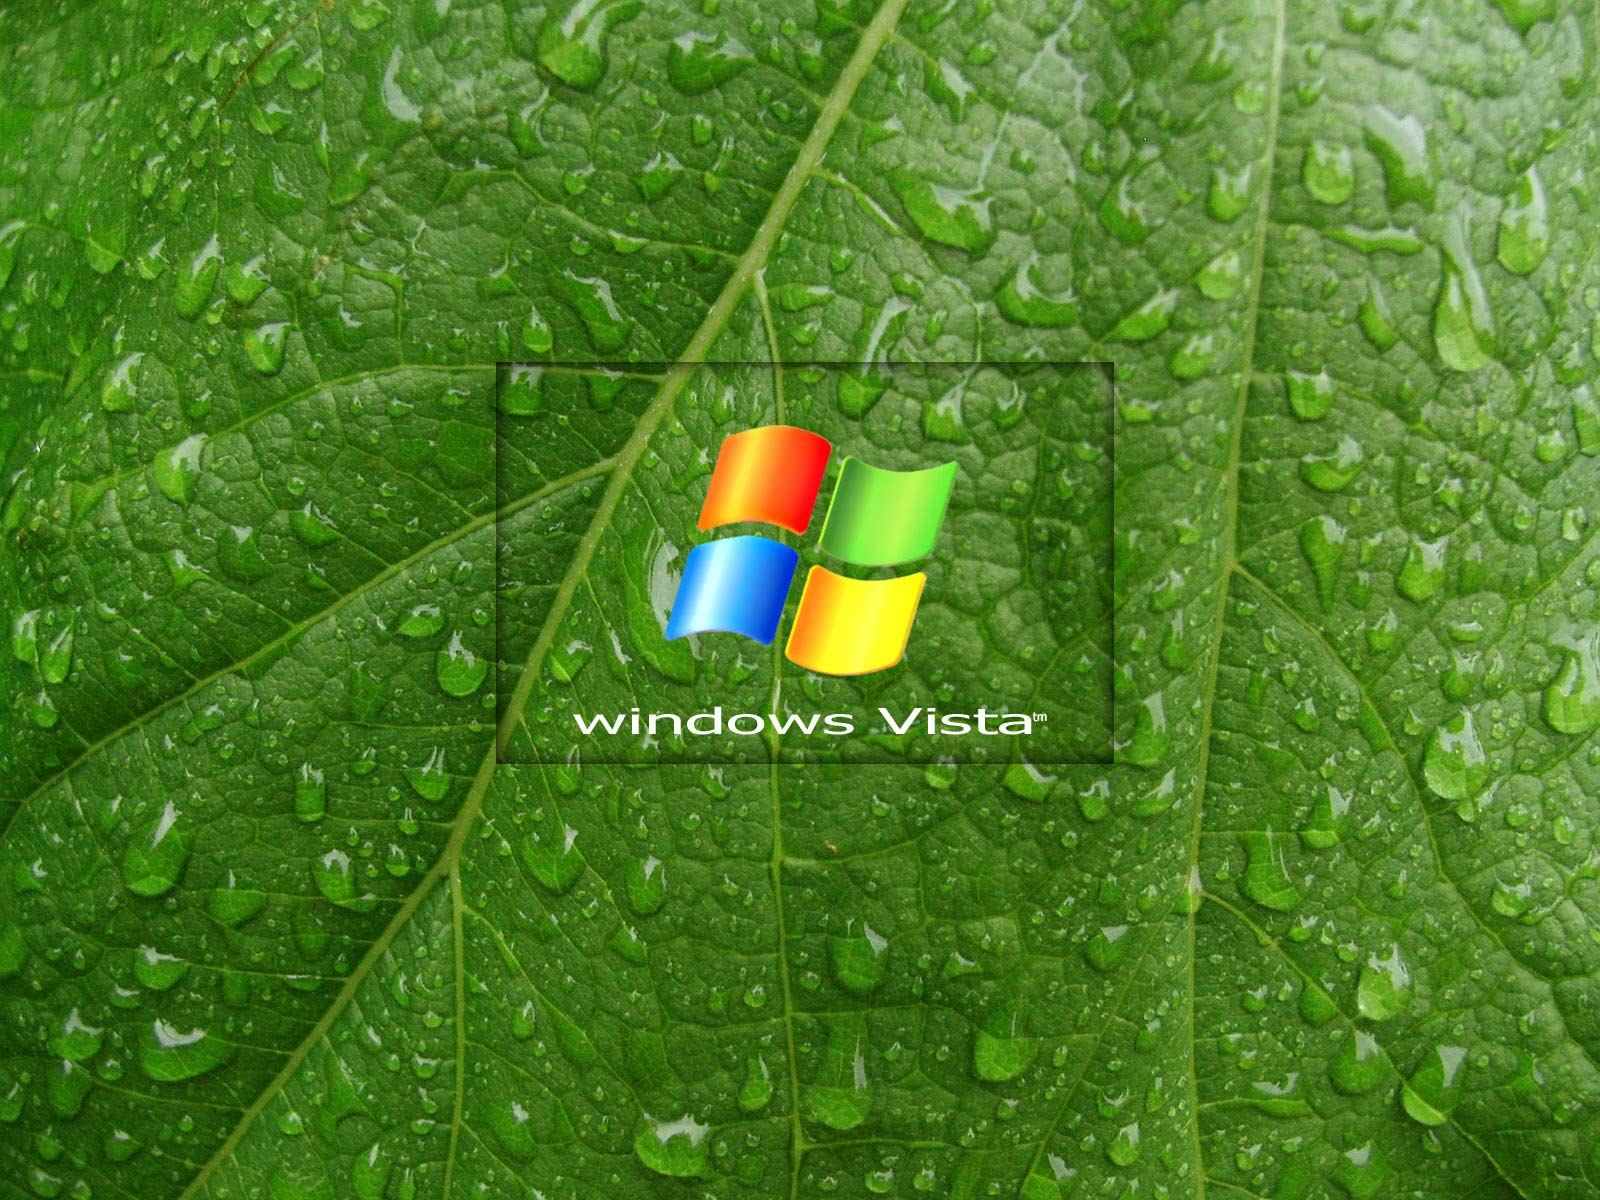 windows vista desktop wallpaper www